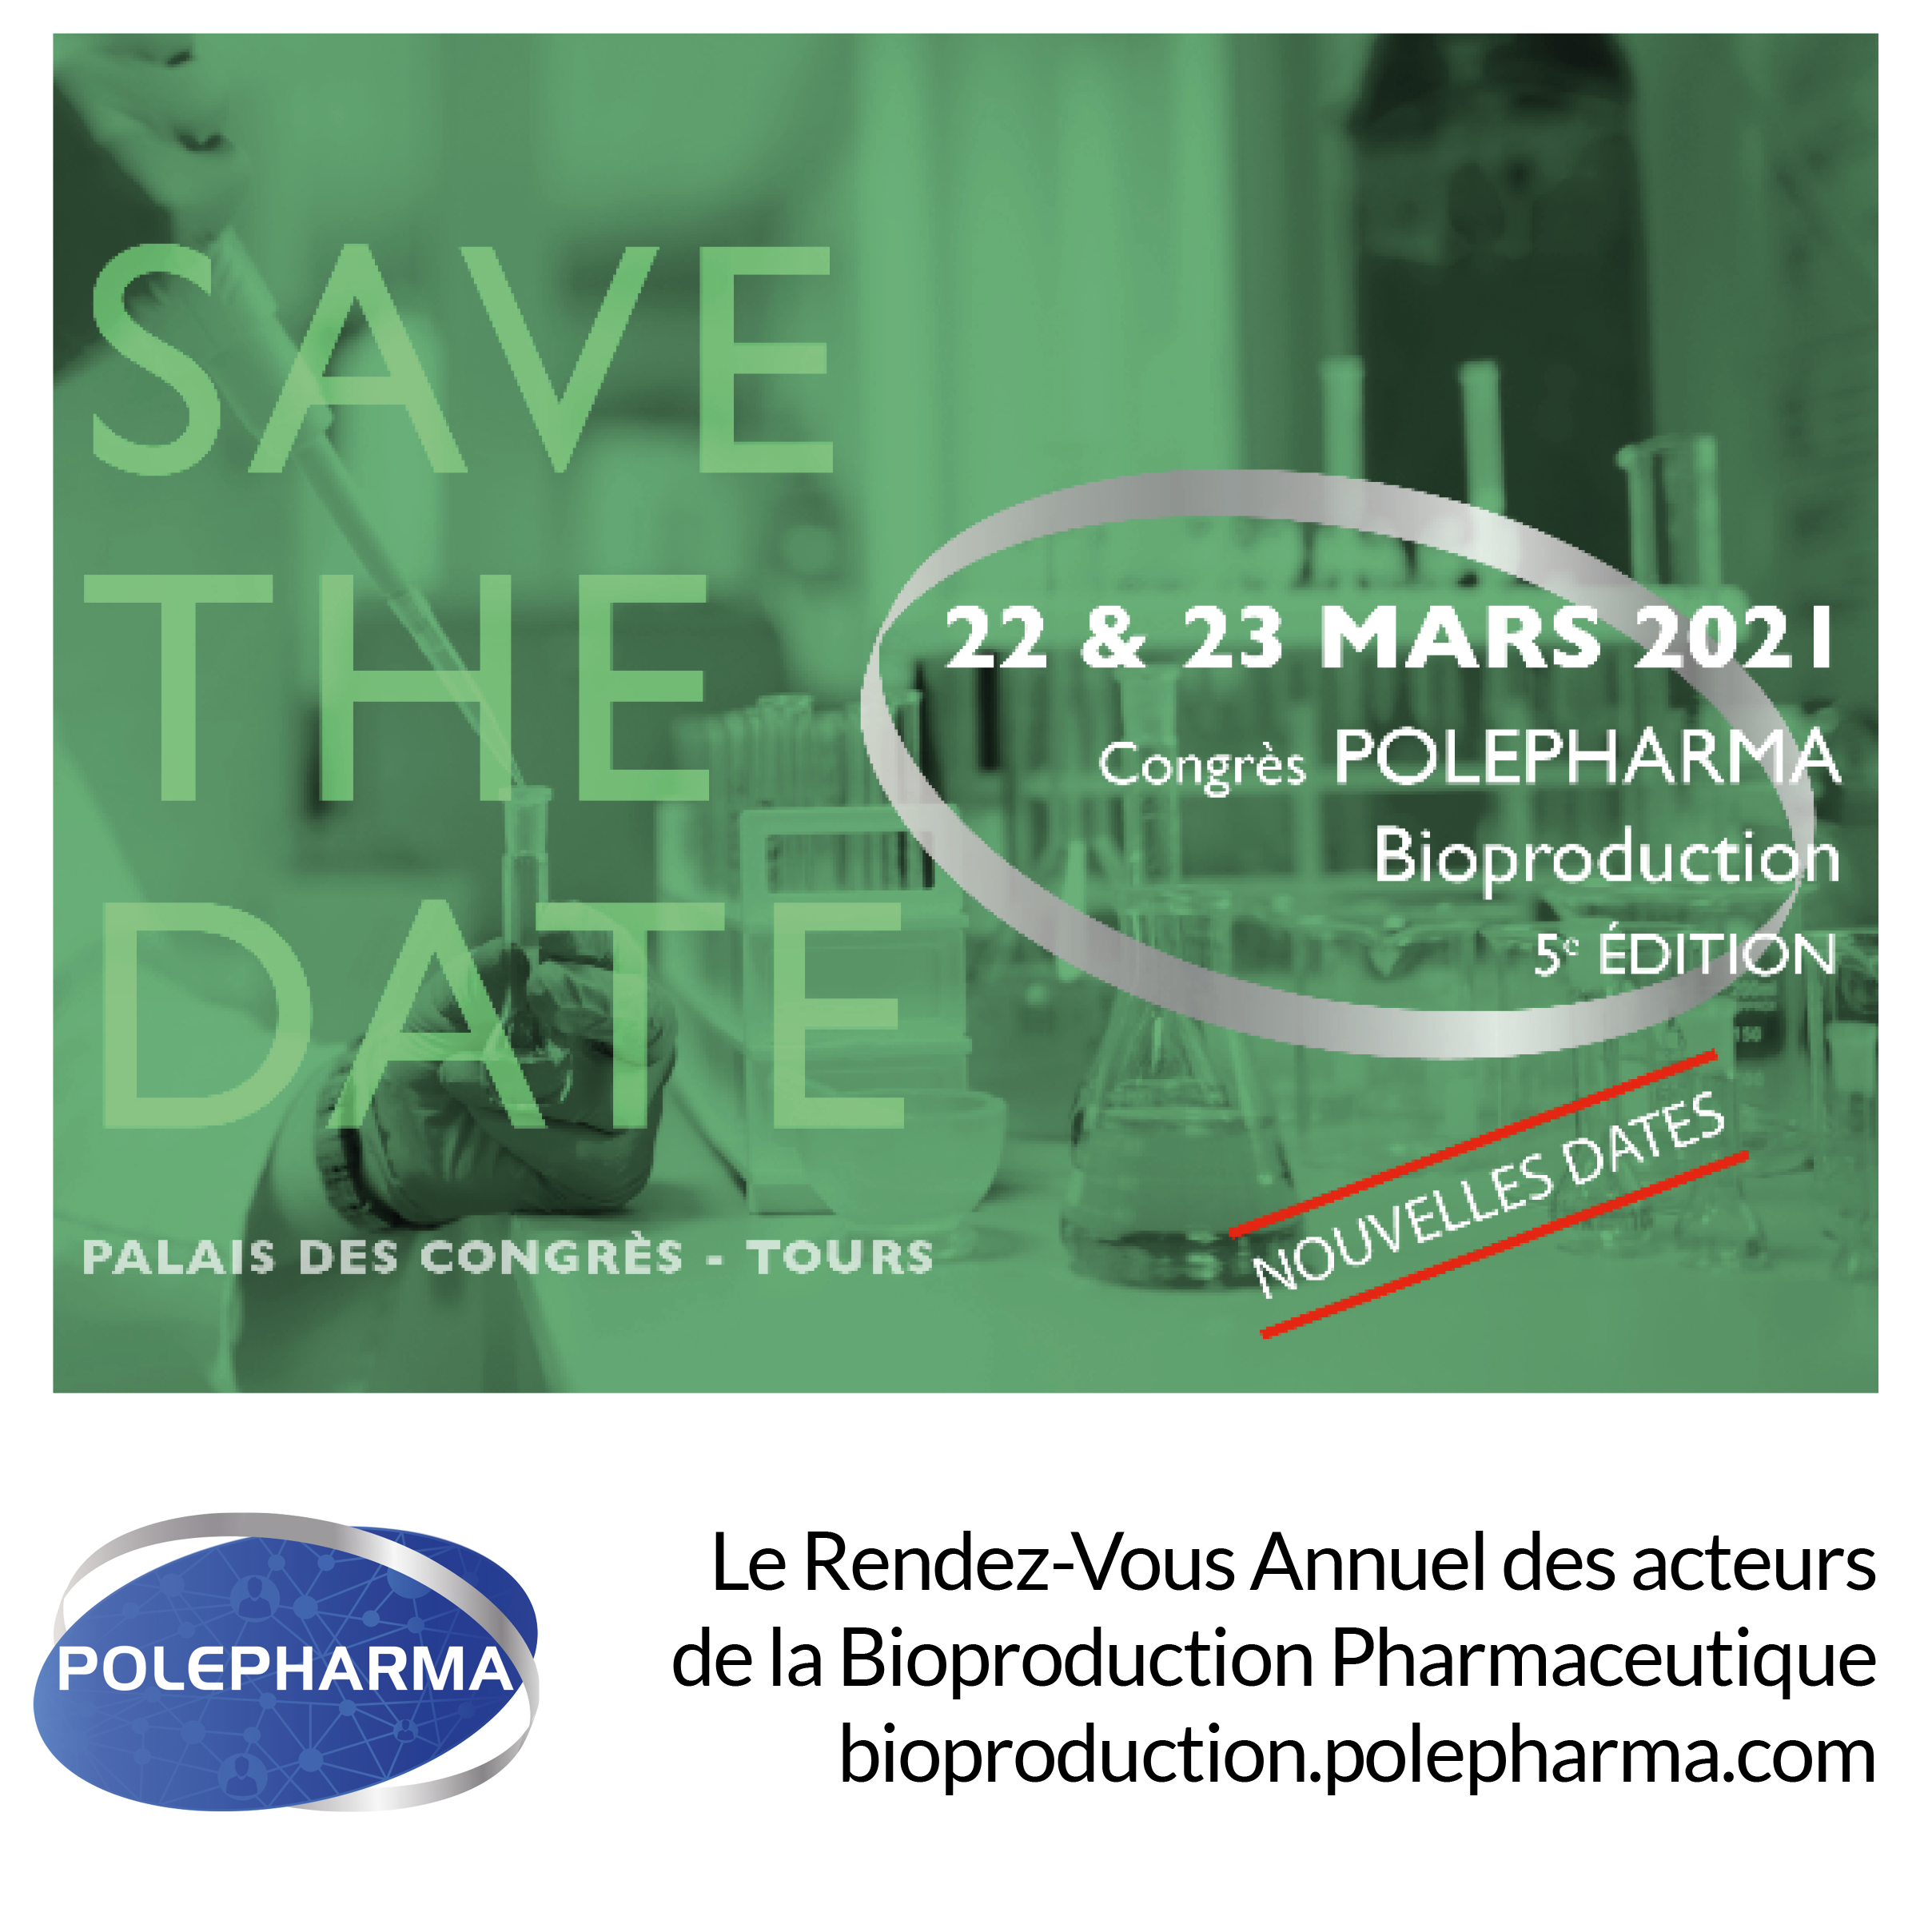 Advertising POLEP¨HARMA_Le Rendez-Vous Annuel des acteurs de la Bioproduction Pharmaceutique